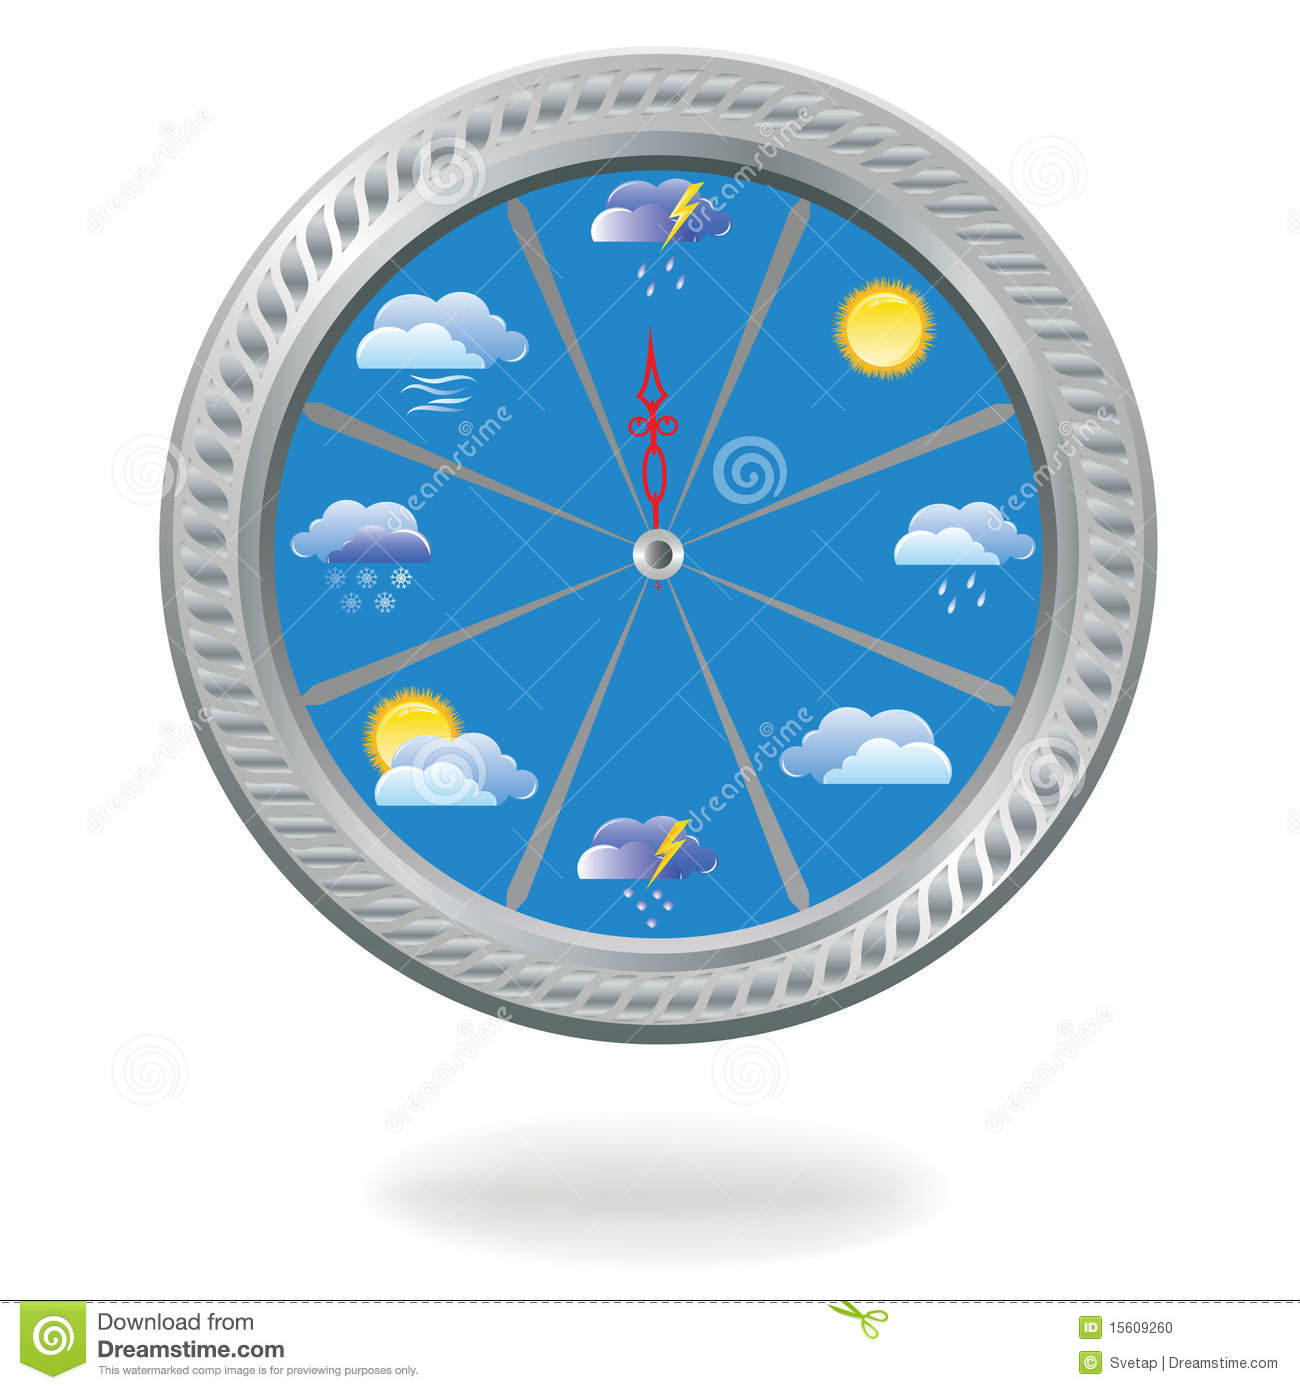 12 Weather And Time Icon Images